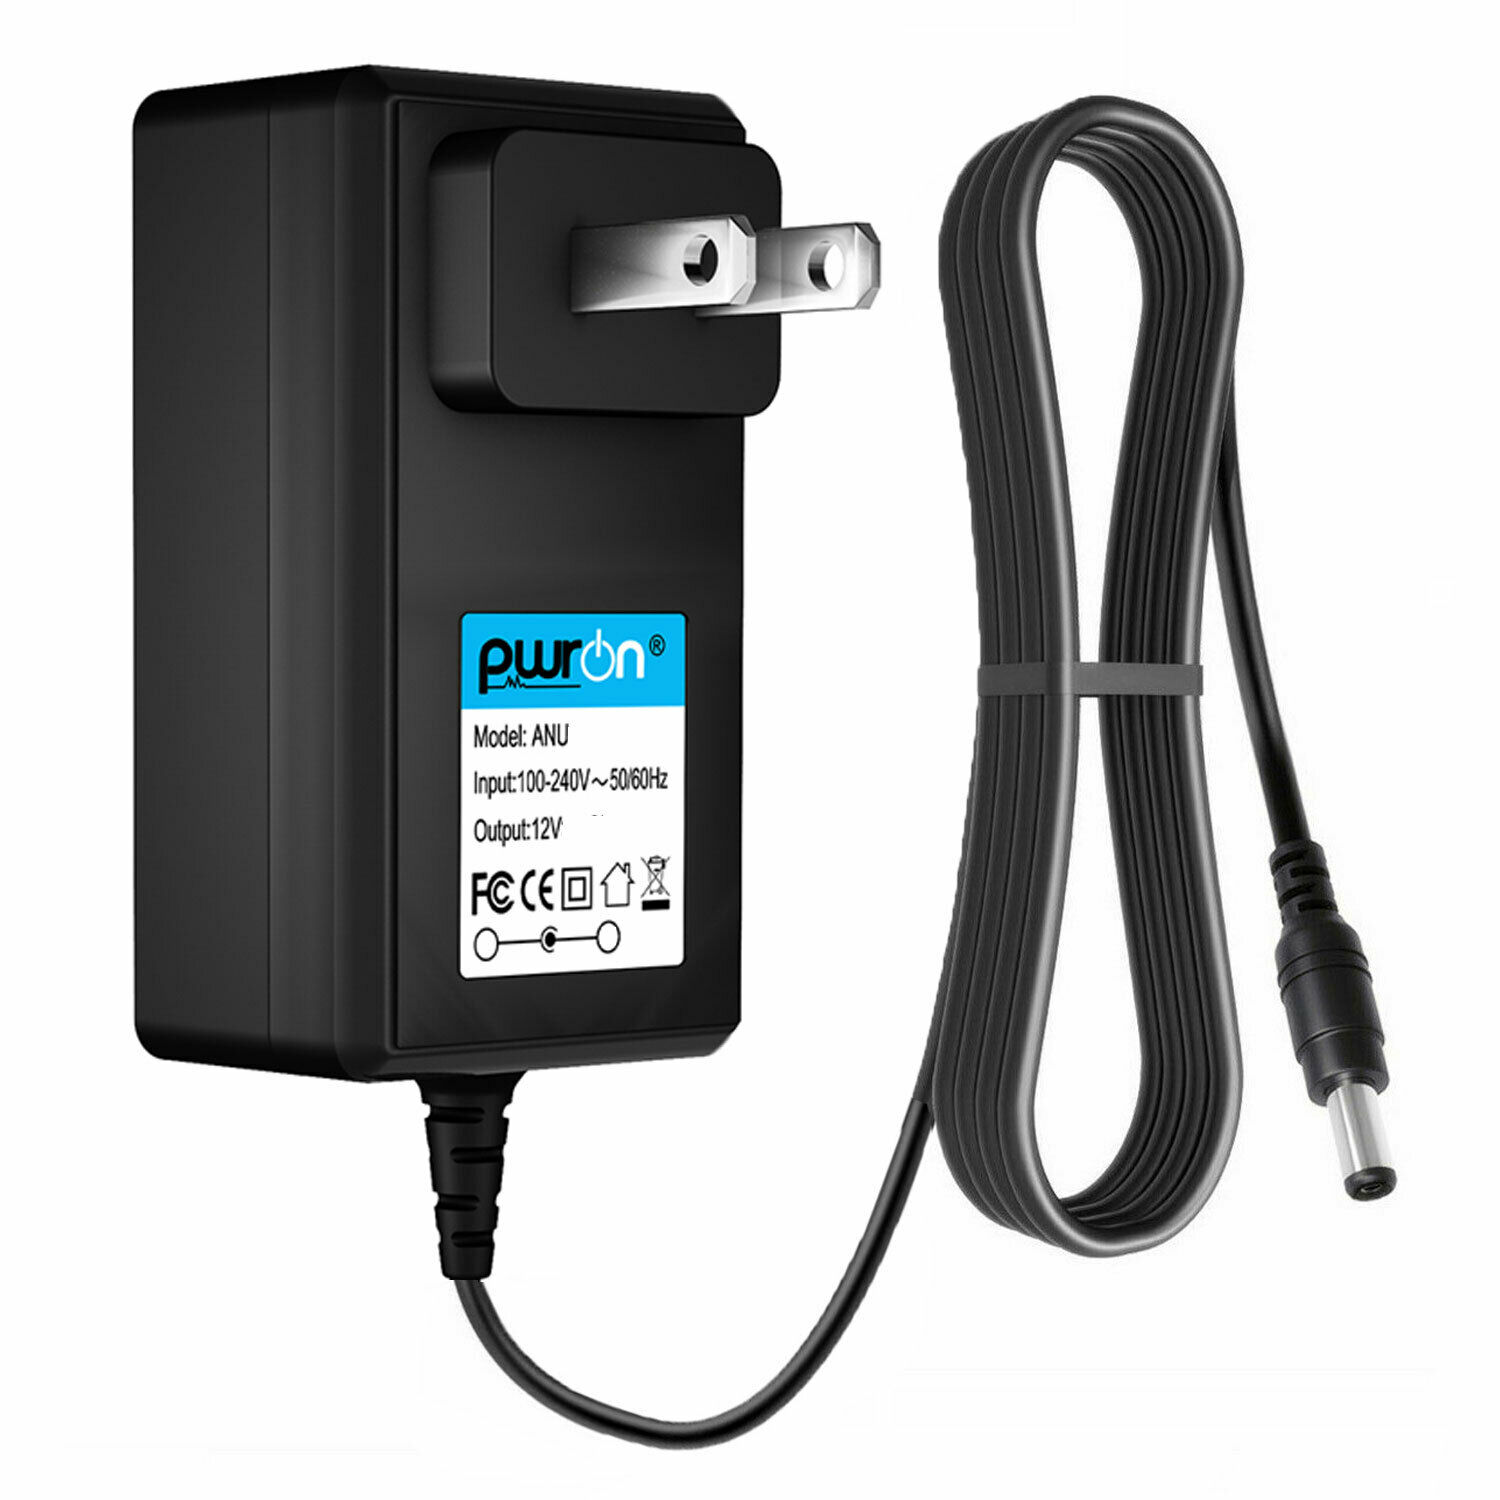 PwrON 12V AC DC Adapter Charger for Seagate FreeAgent 9BJ83G-561 Power Supply